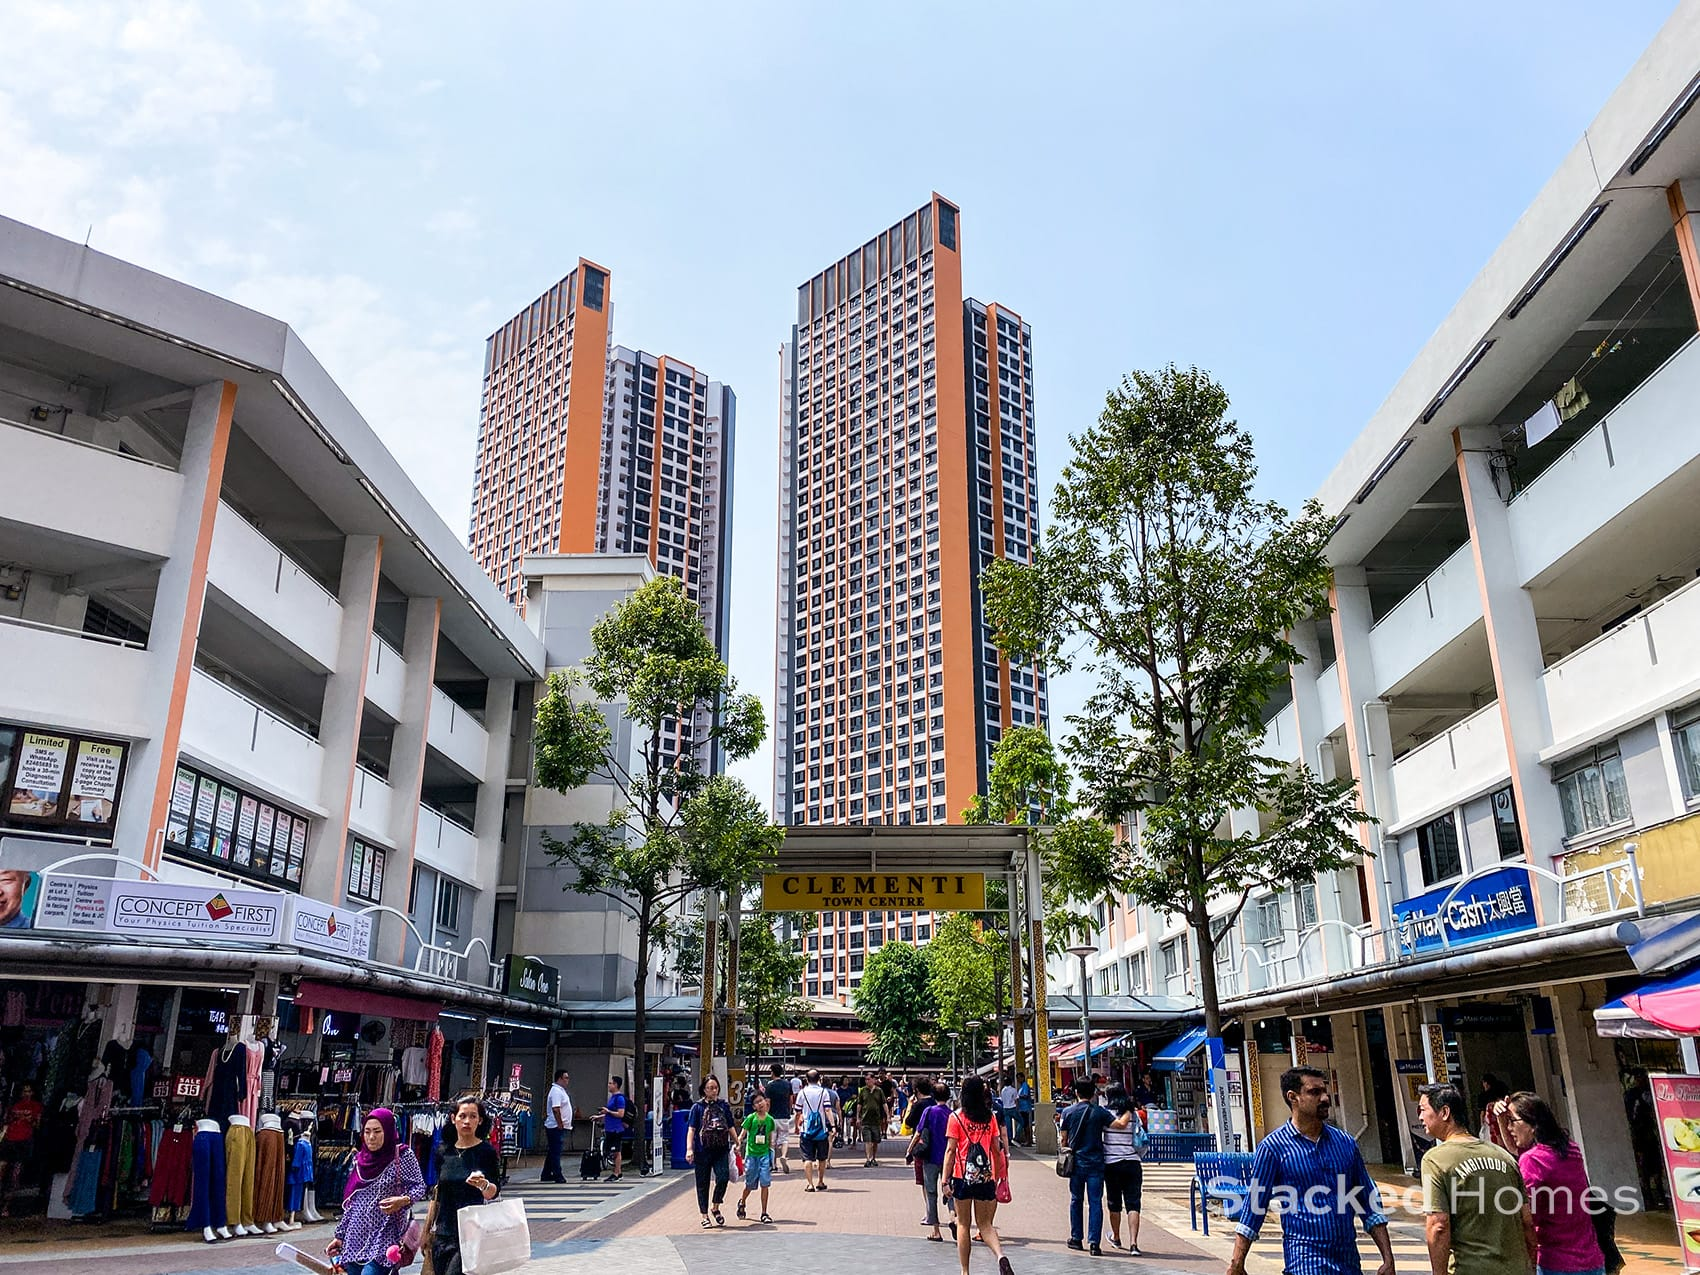 Clementi town centre